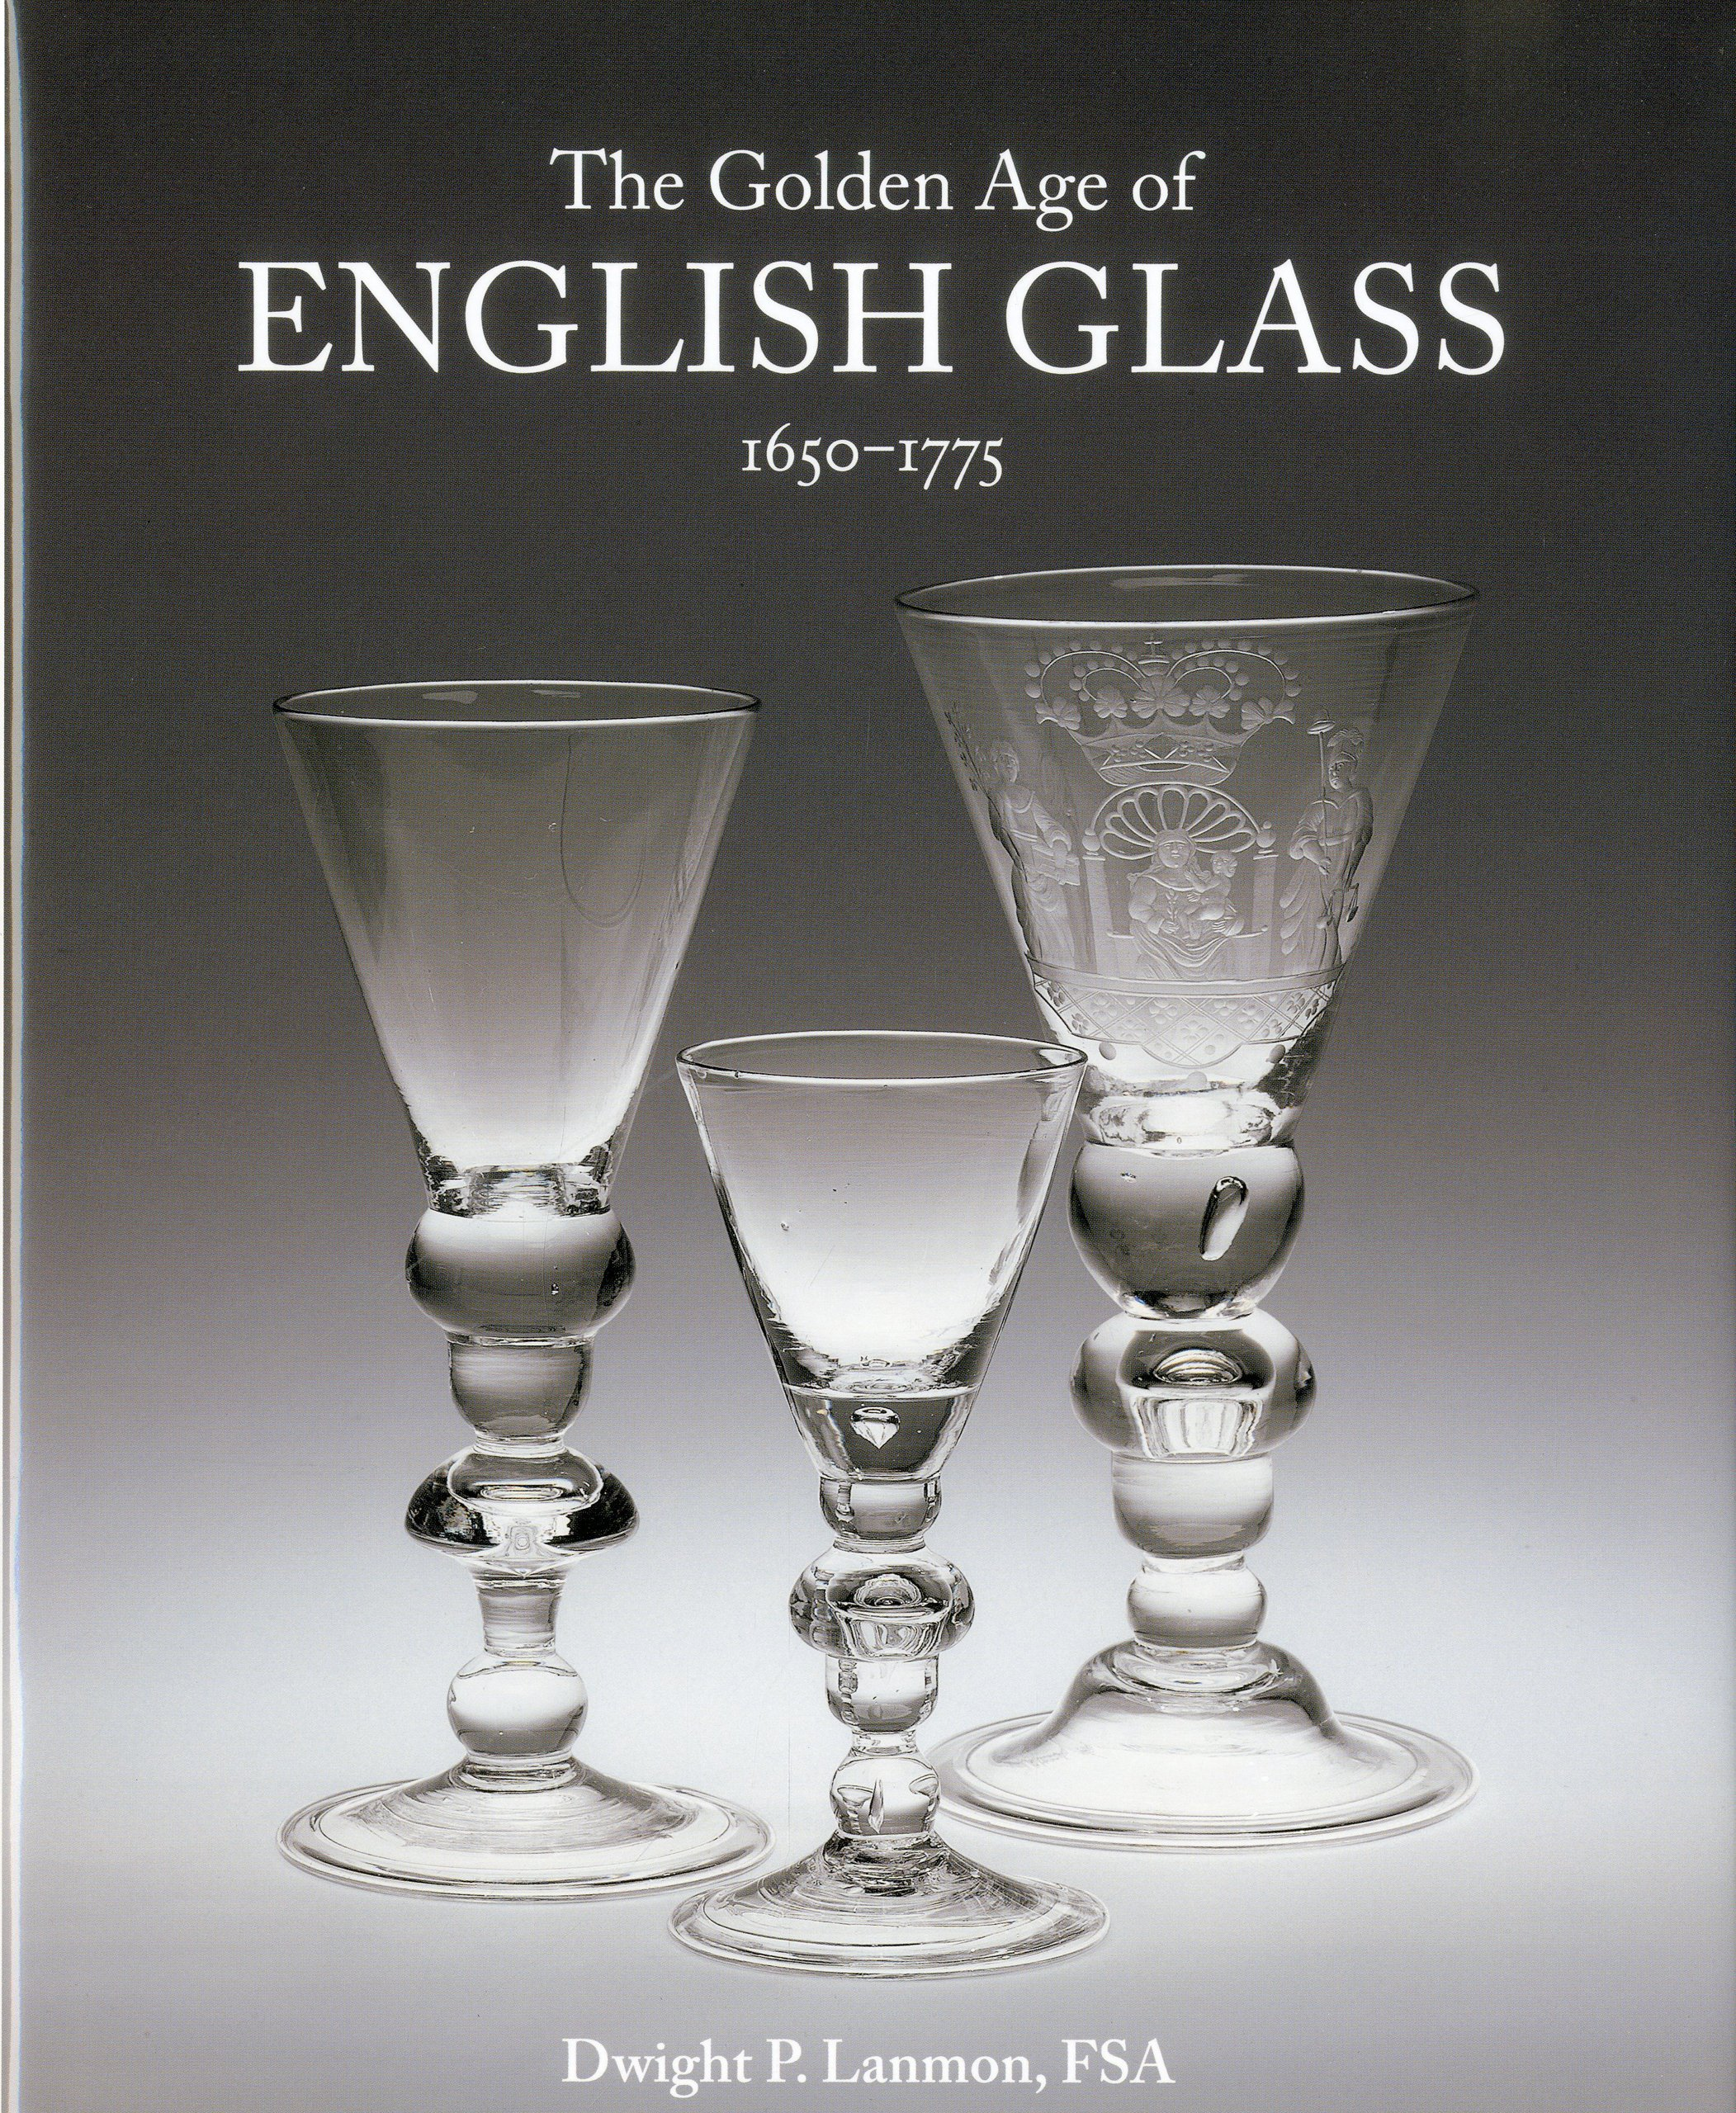 The Golden Age of English Glass: 1650-1775